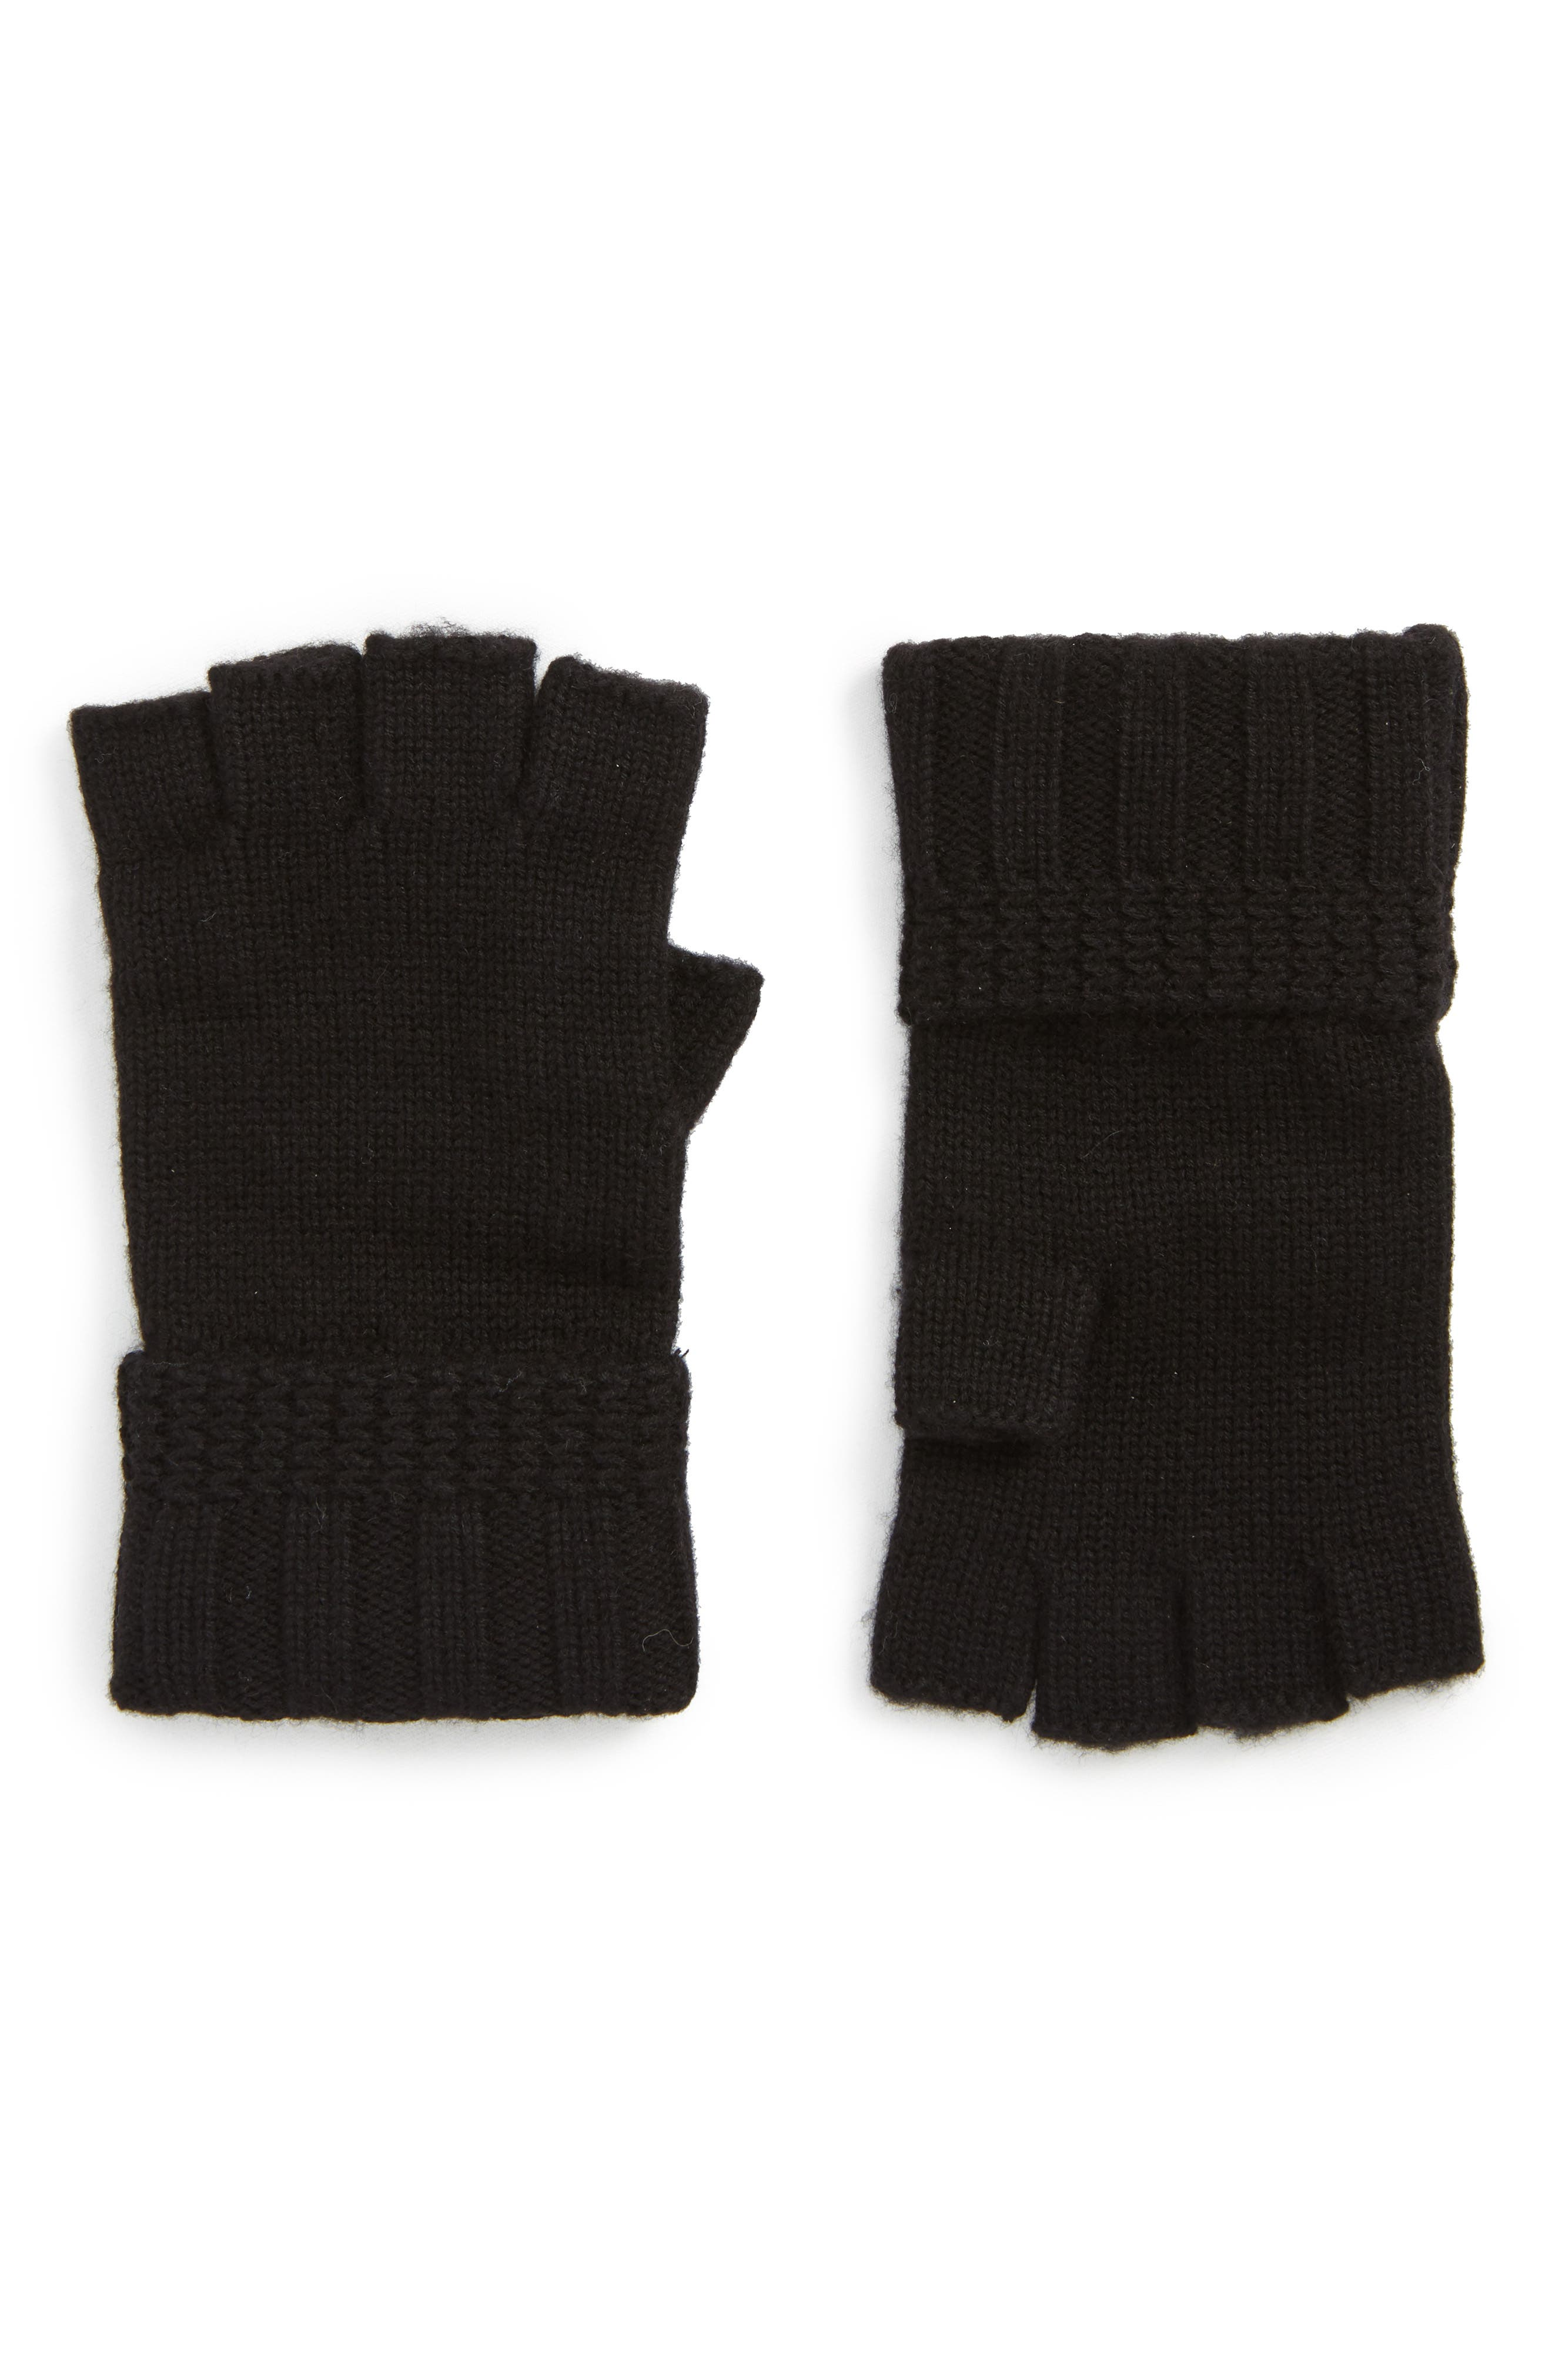 UGG<sup>®</sup> Texture Knit Fingerless Gloves,                         Main,                         color, 001